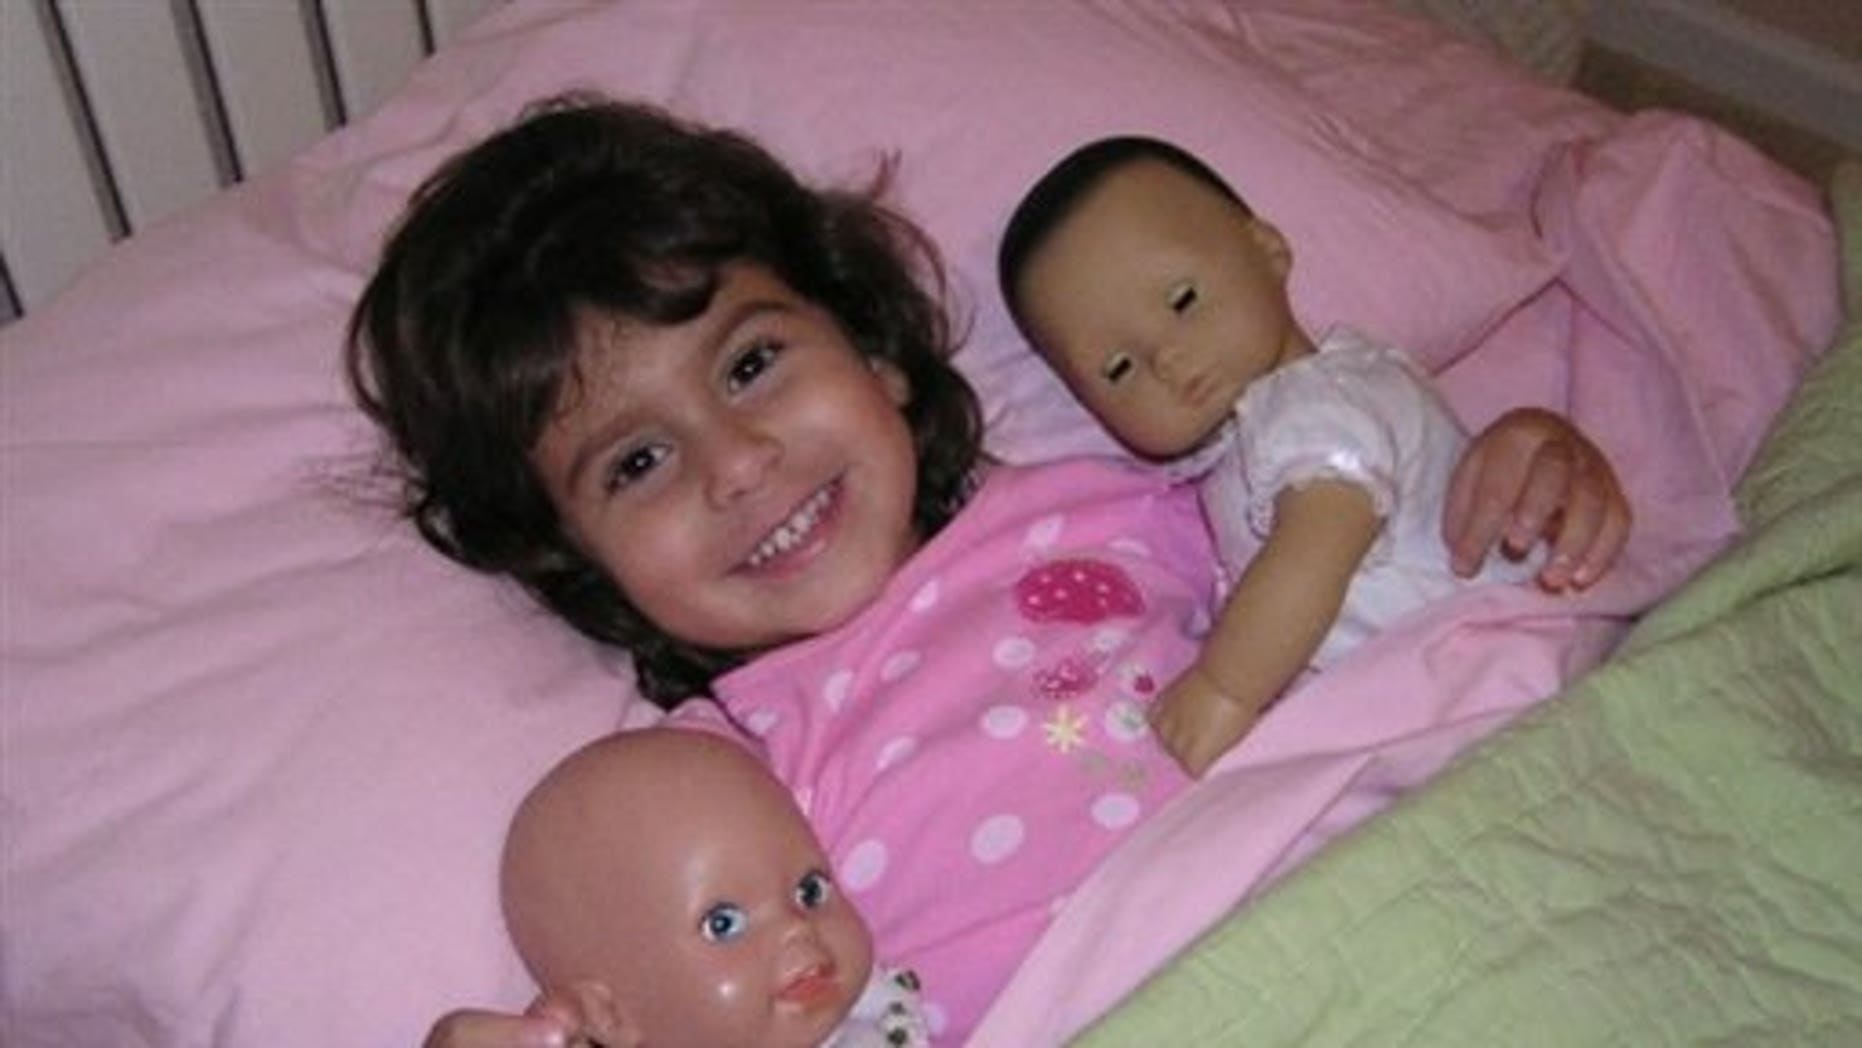 This undated photo provided by Jim Sitton via WPTV shows Makayla Sitton, 6, one of four people shot to death during a family Thanksgiving gathering Thursday night, Nov. 26, 2009 in Jupiter, Fla.